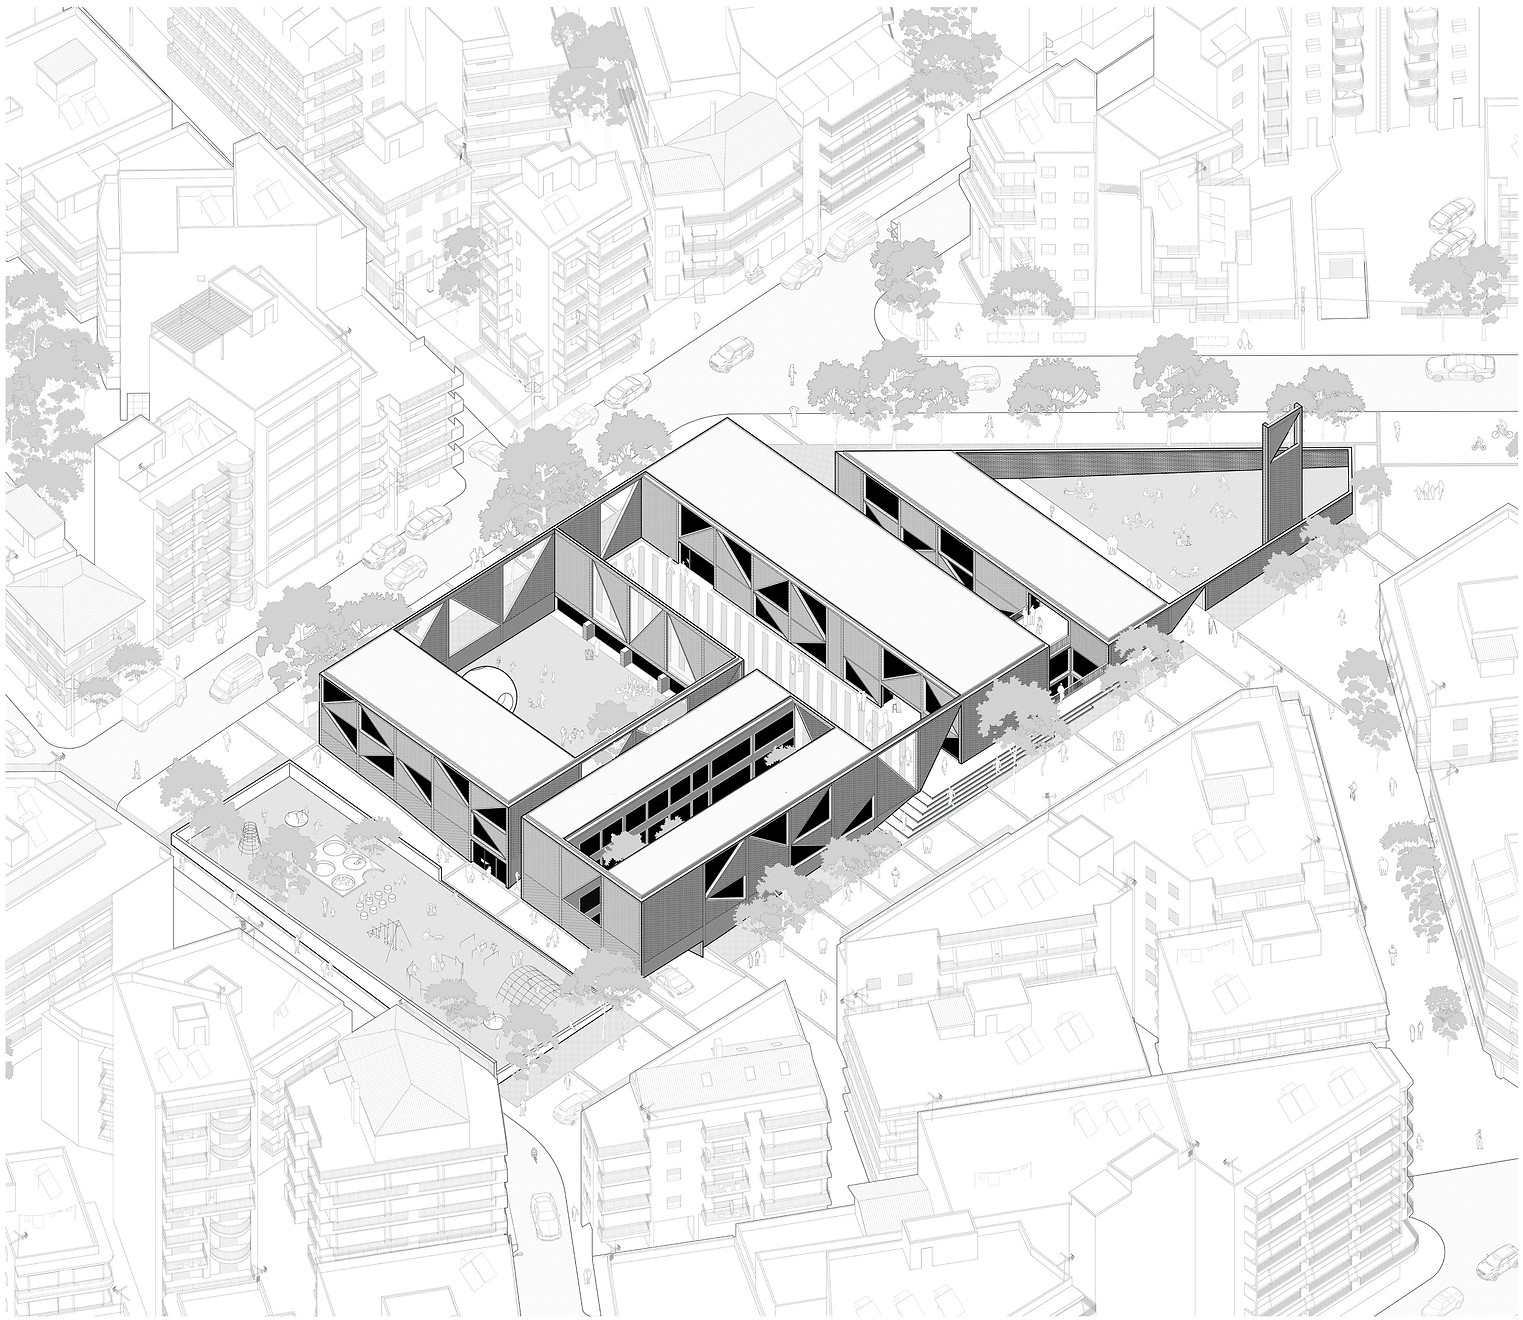 03.axonometric view.jpg